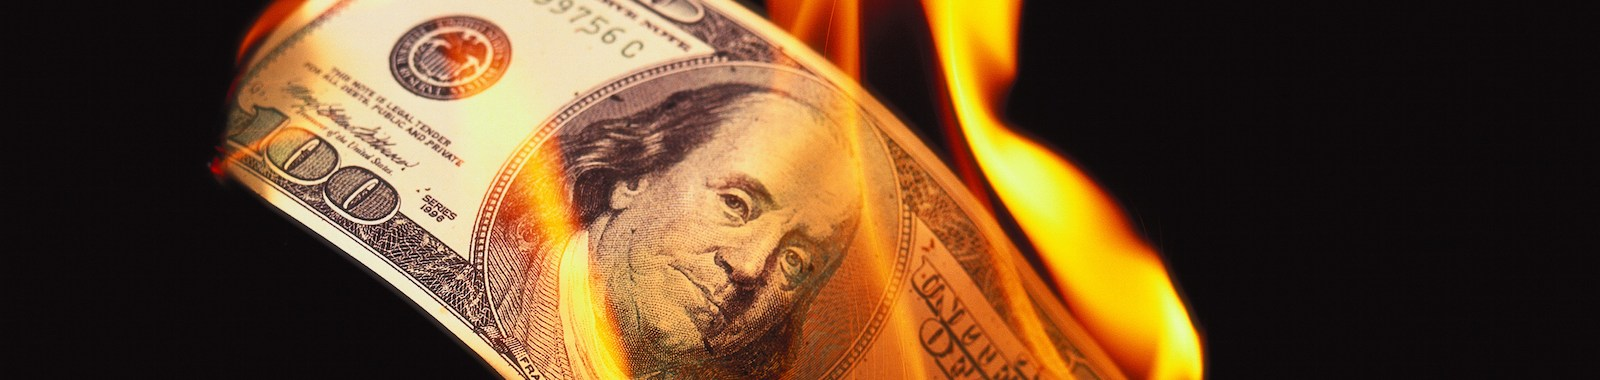 close-up of currency burning